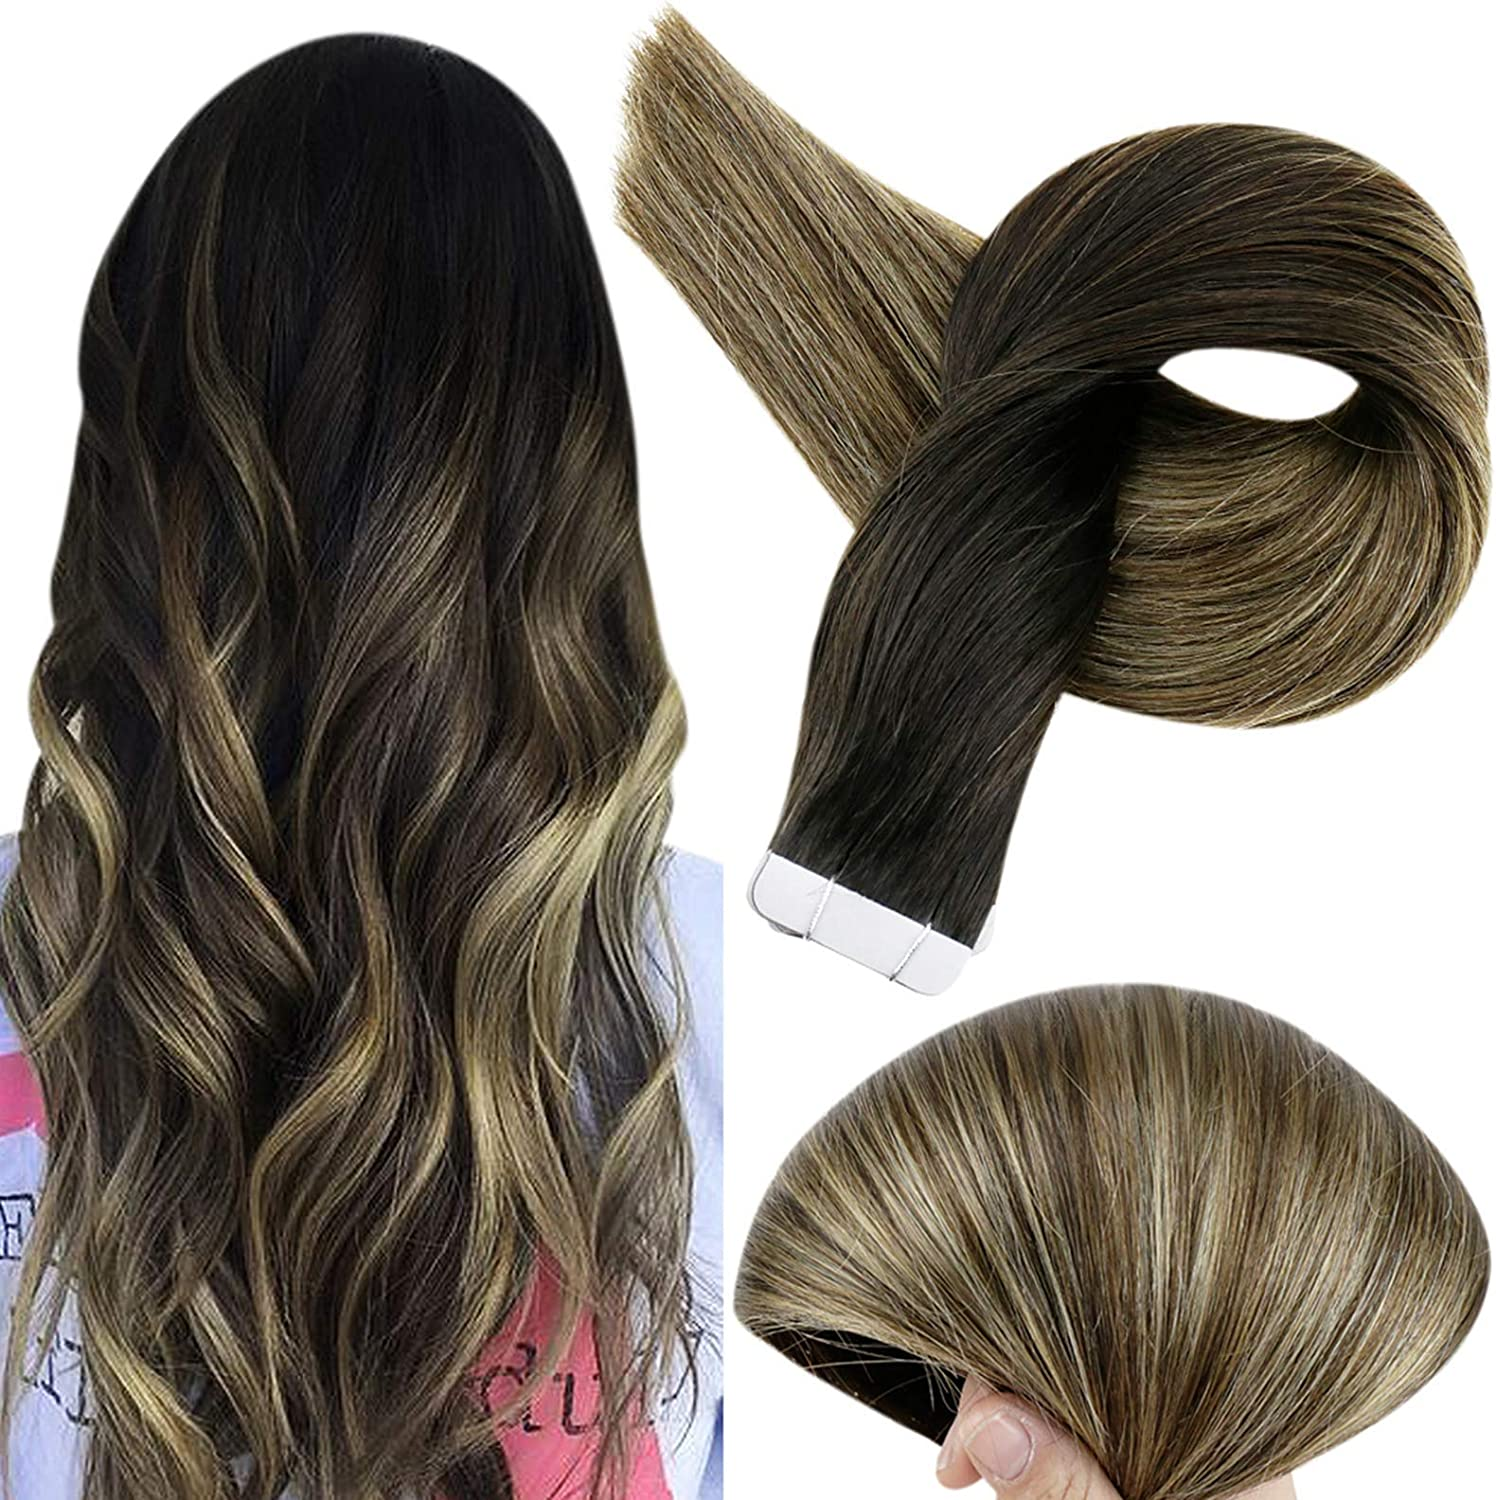 Full Shine Tape in Hair Extensiones Color 1B Fading to 6 and 27 Honey Blonde Highlighted Salon Quality Balayage Extensions Remy Cortina De Pelo ...